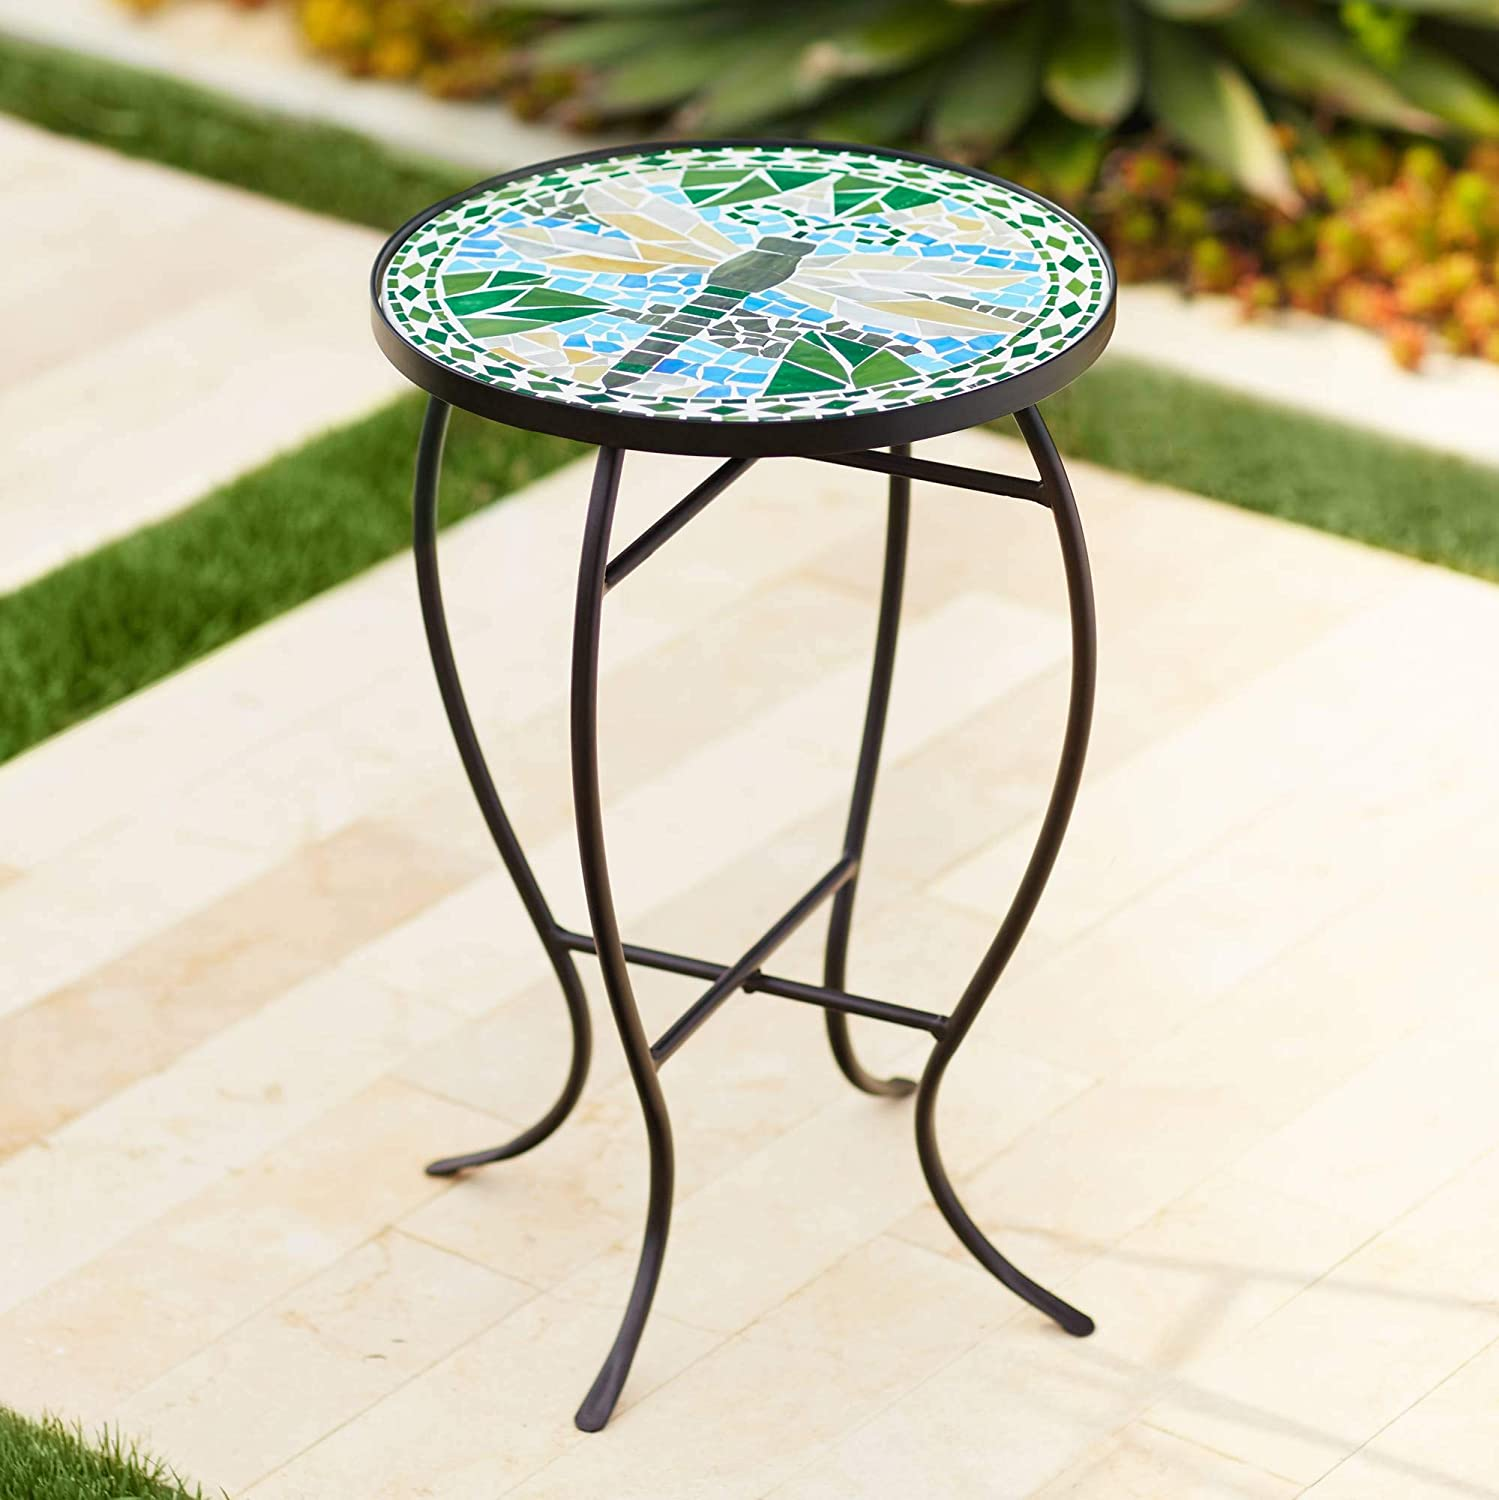 Teal Island Designs Dragonfly Mosaic Black Iron Outdoor Accent Table: Home Improvement